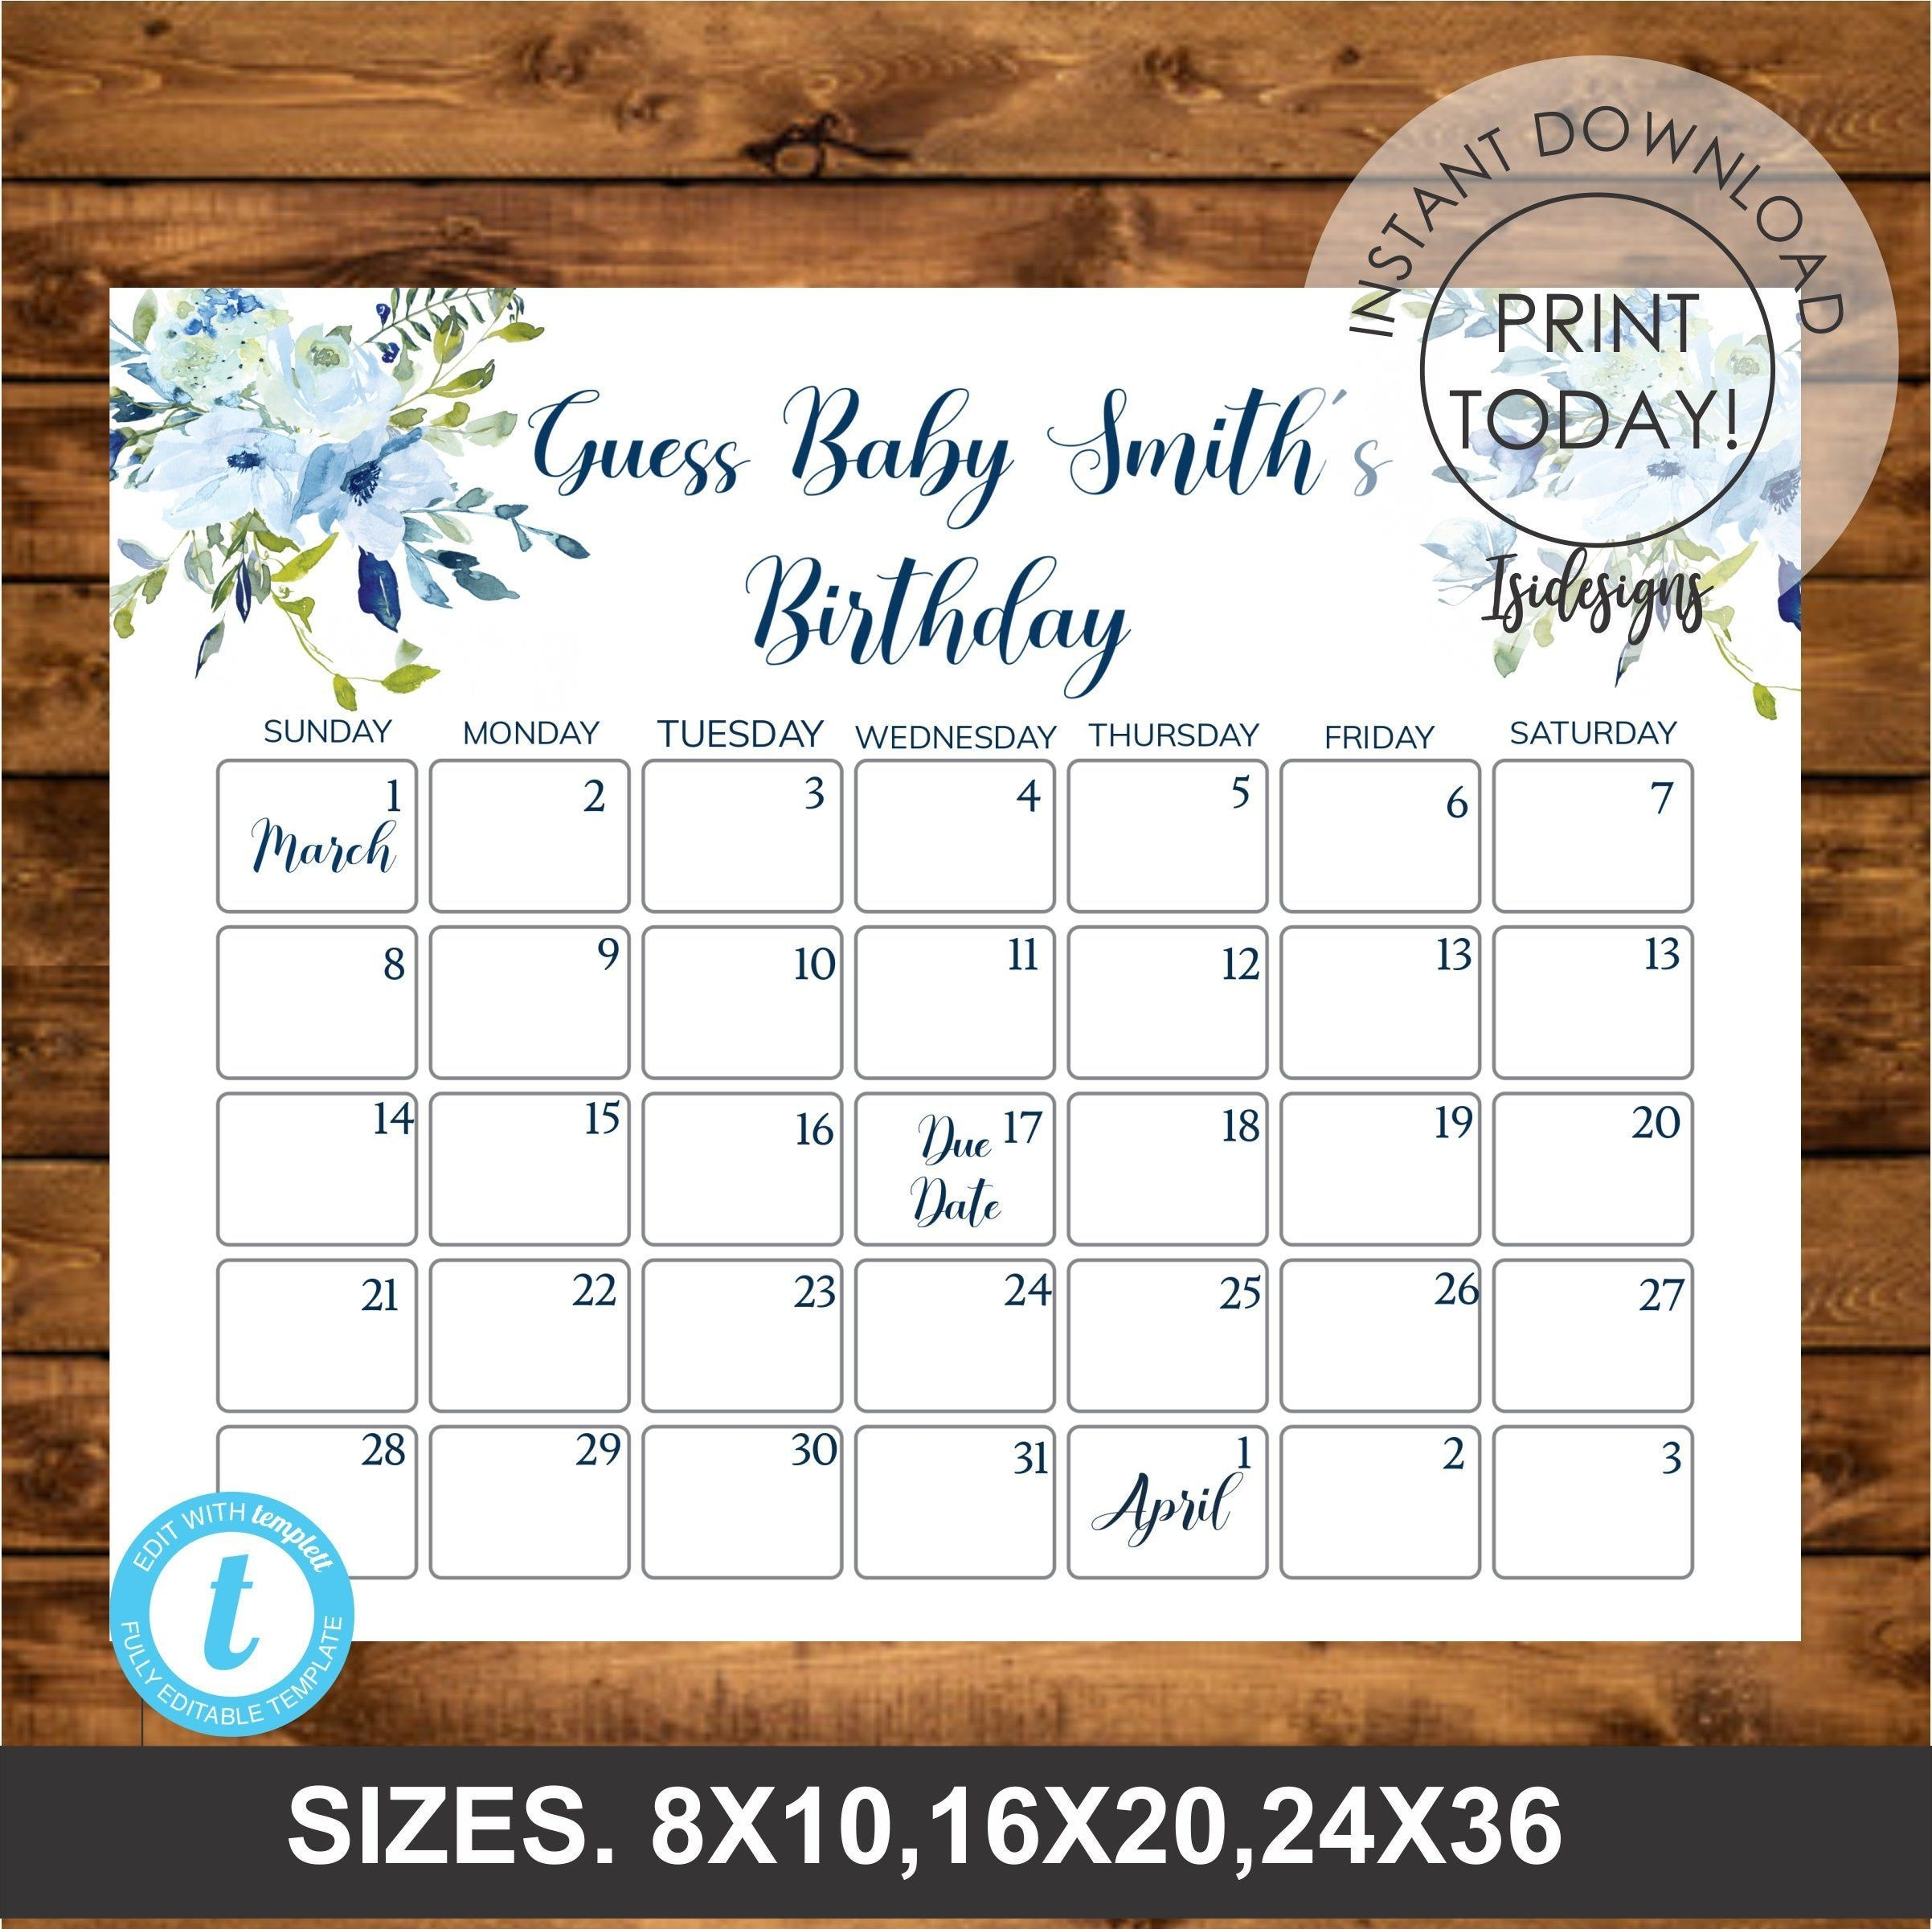 Blue Floral Editable Due Date Calendar, Guess Baby Birthday